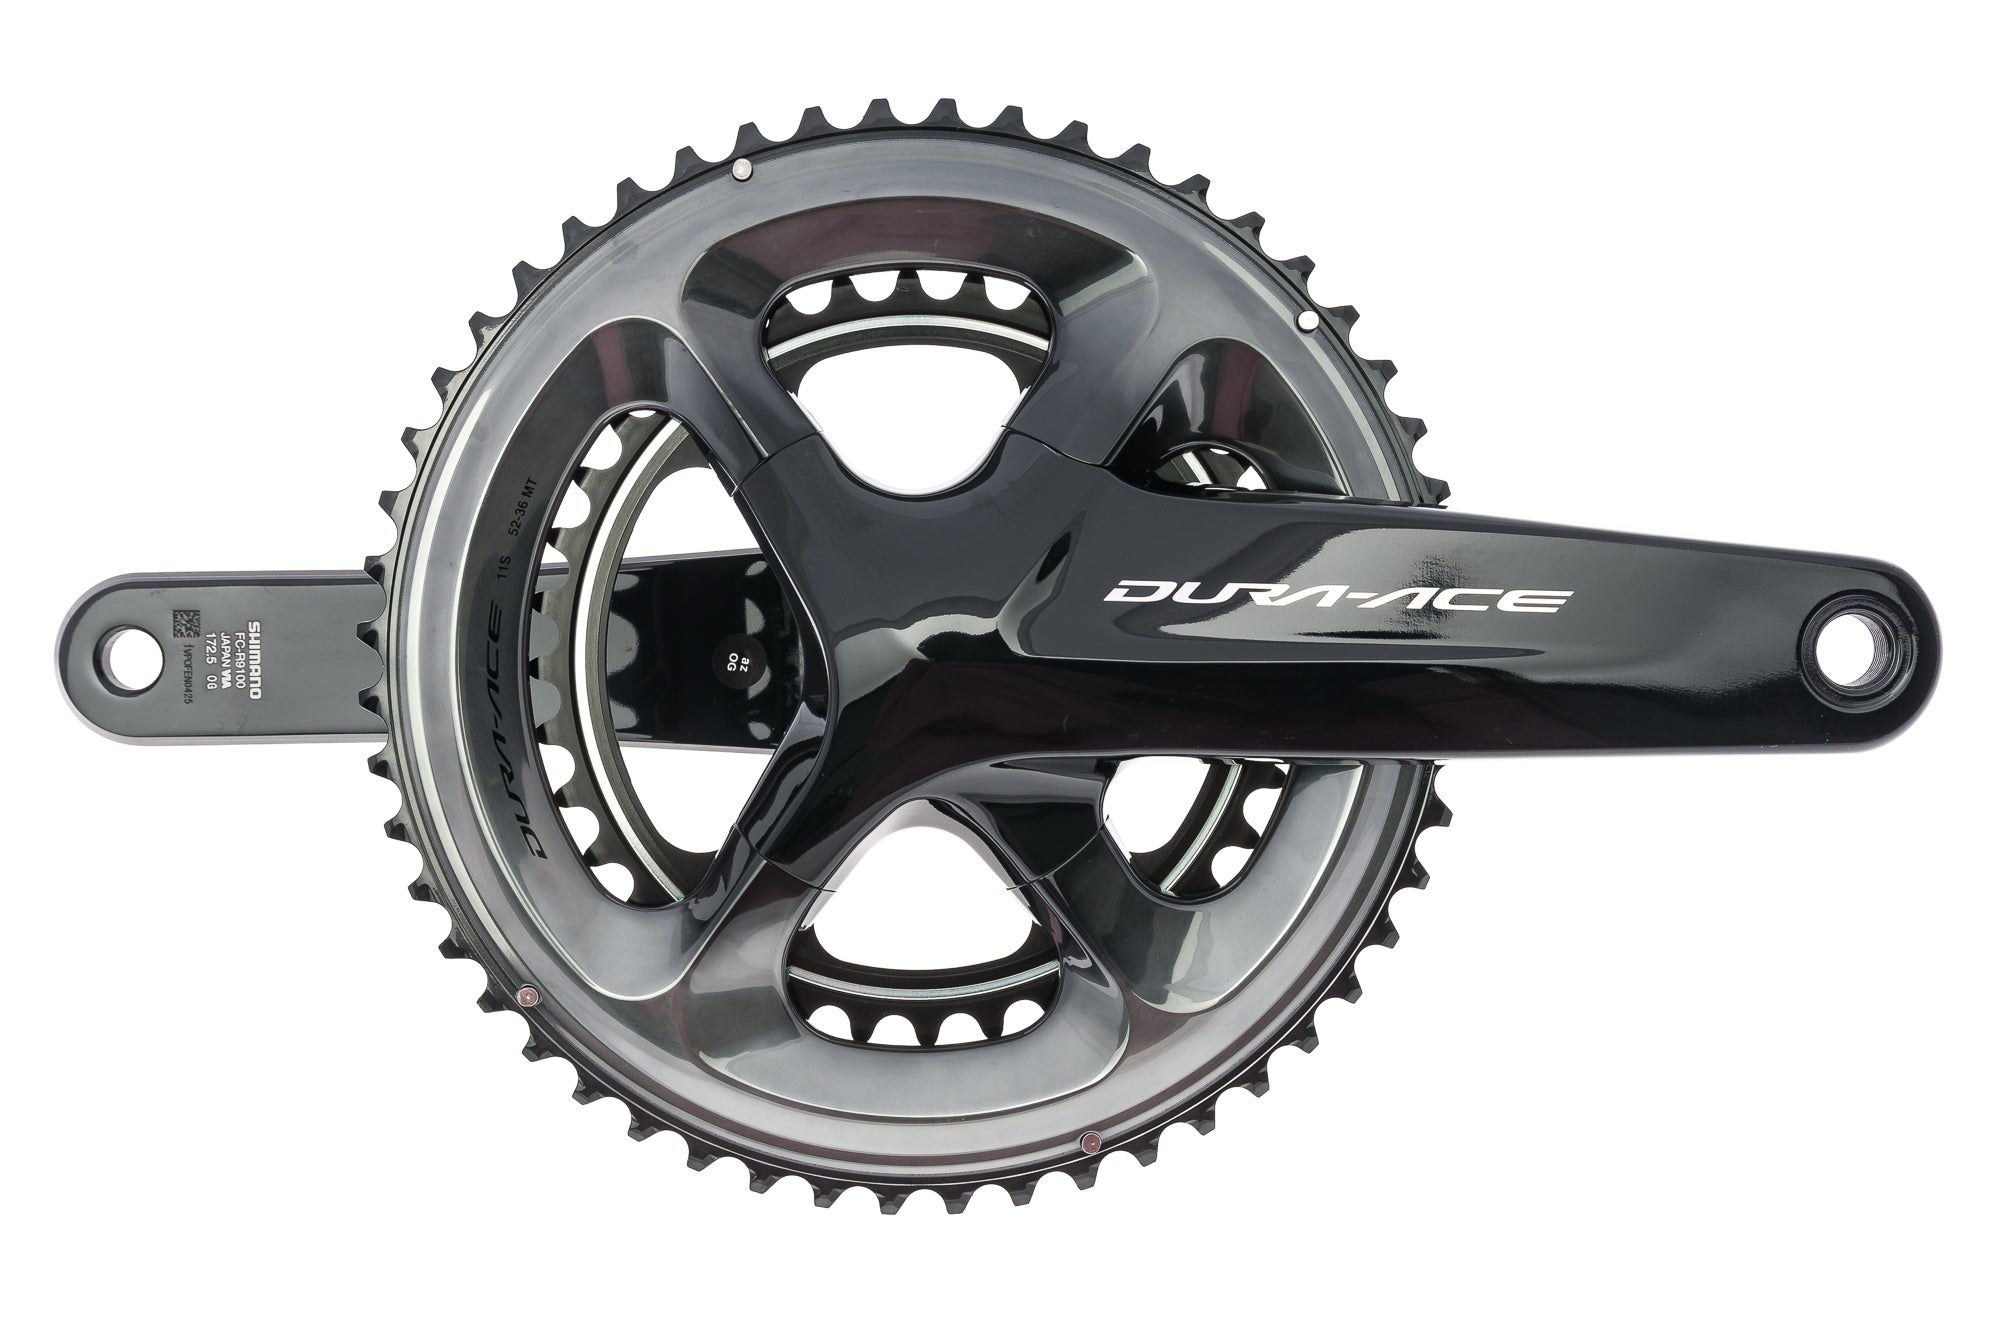 Shimano Dura-Ace 9100 hollowtech II crank set